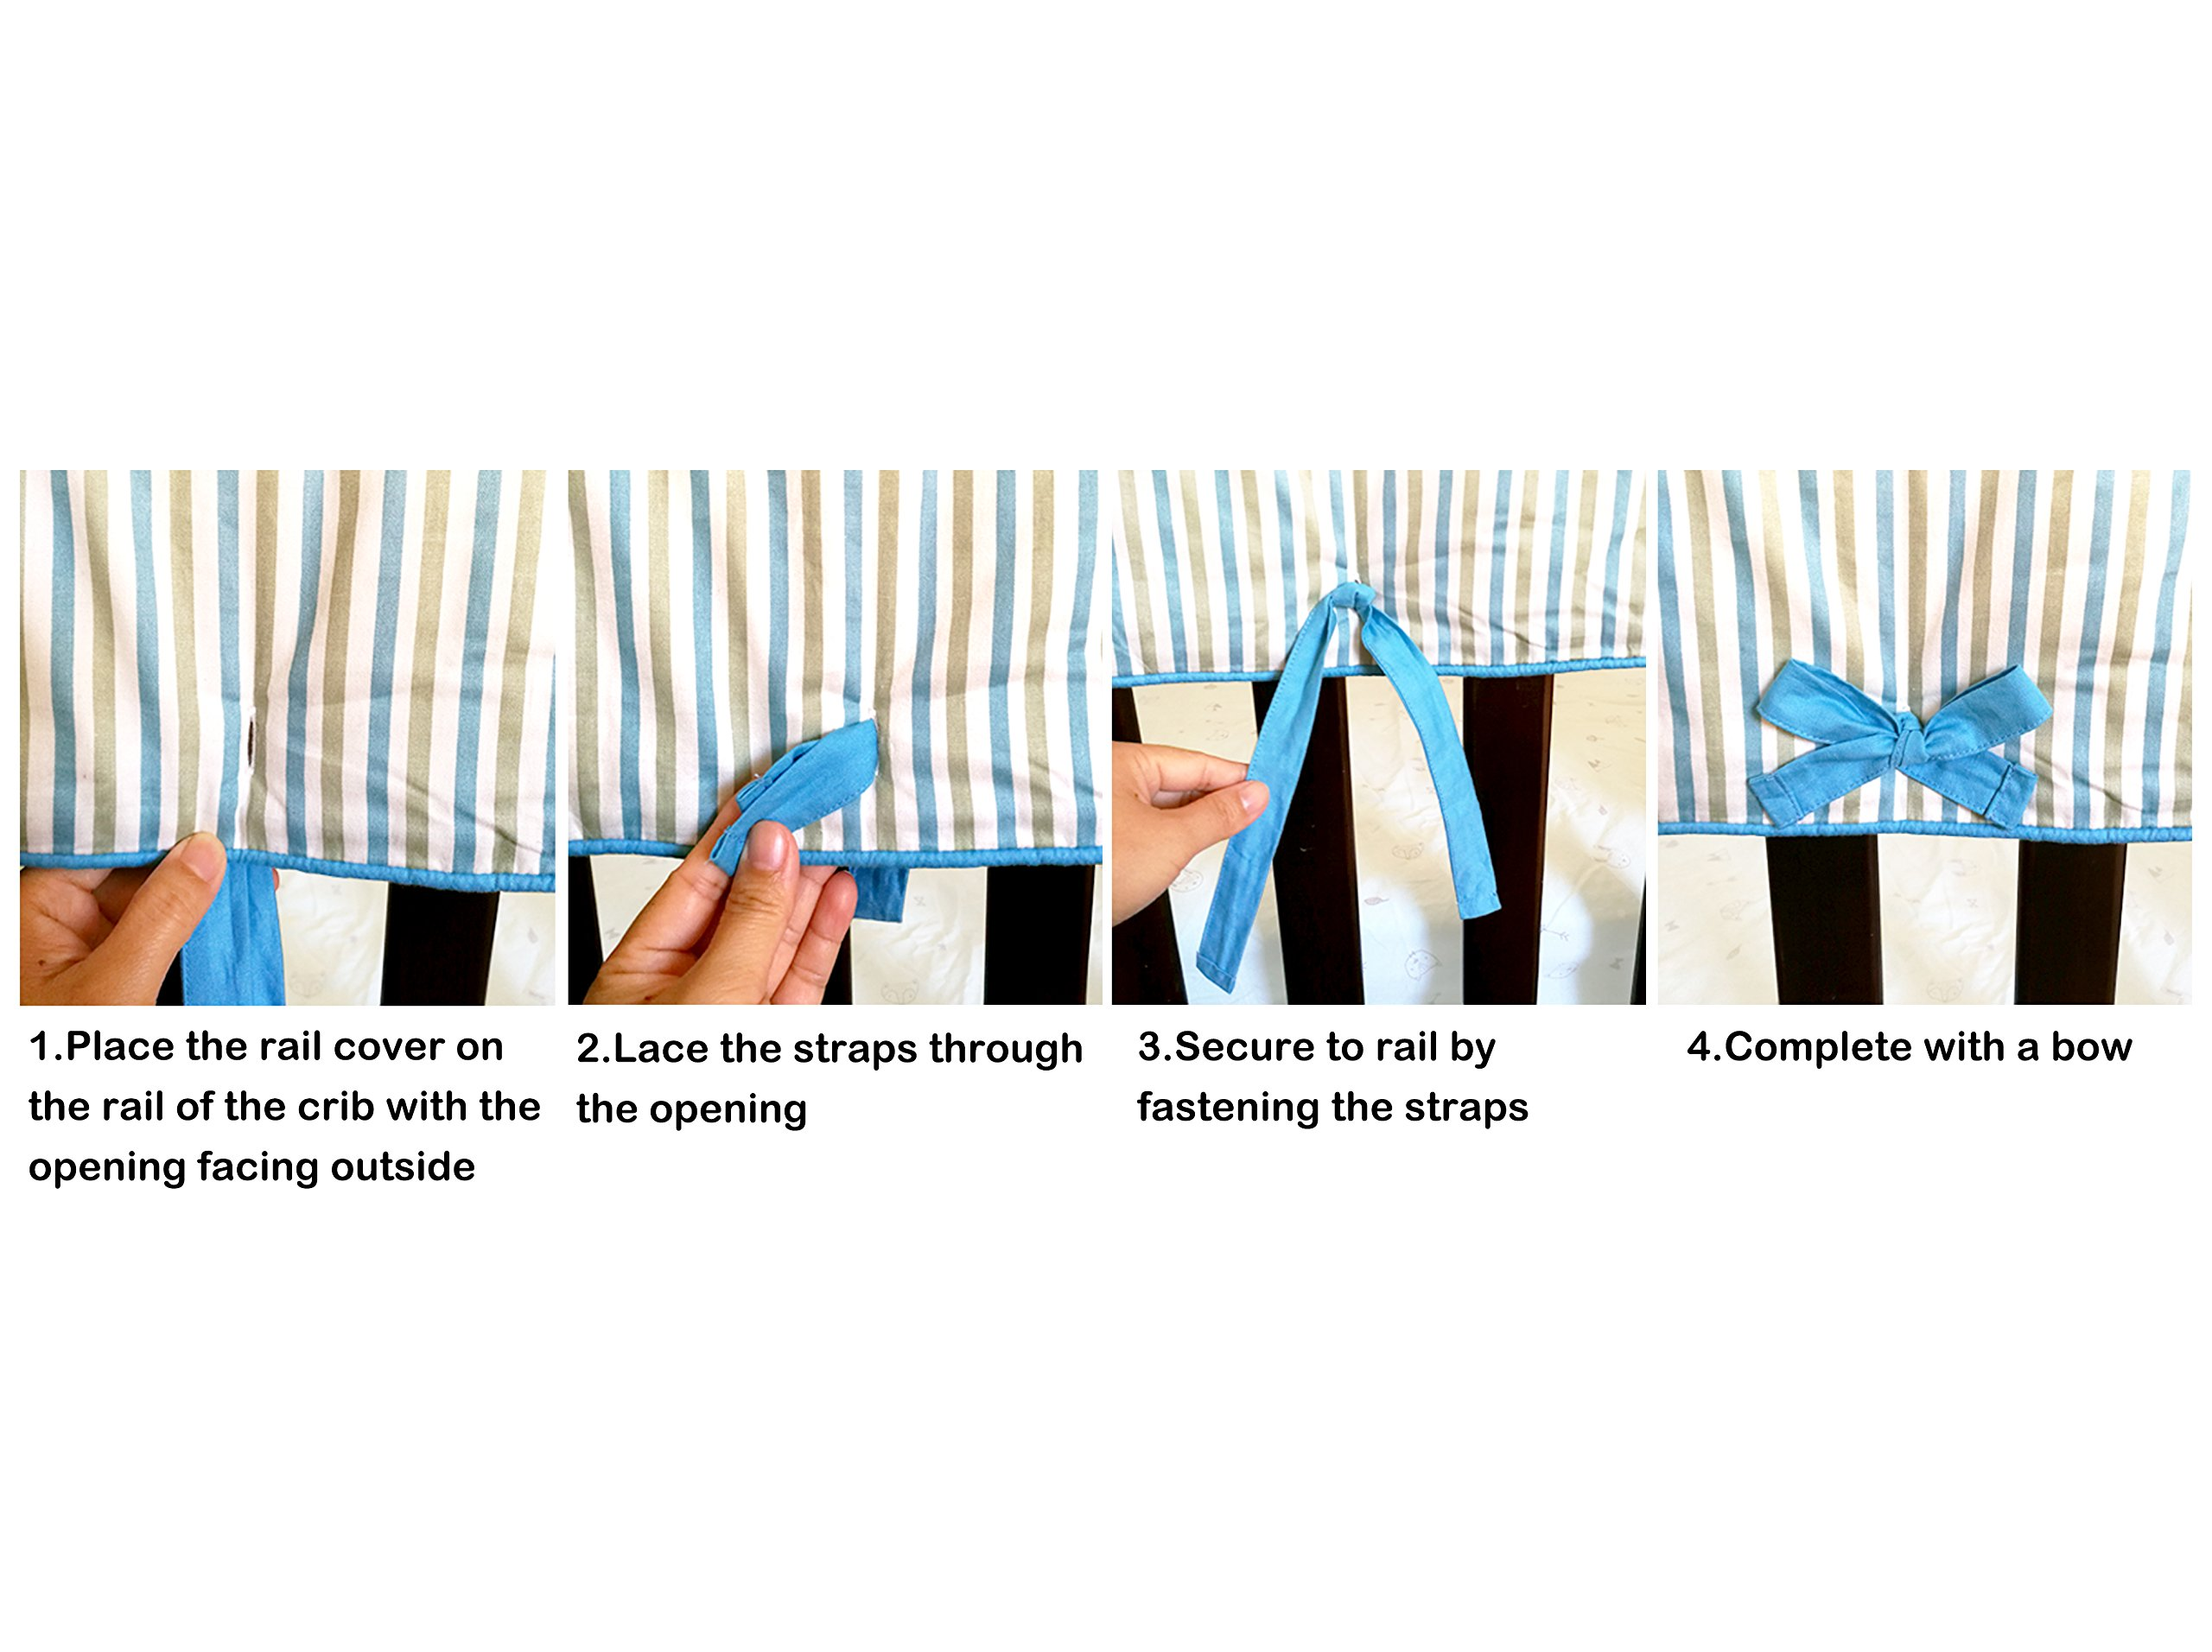 2 Piece 100% Cotton Side Crib Rail Guard Cover/Wrap 29.5'' x 17.5'' for Your Teething Baby,Padding,Cute, Reversible, Machine Washable, Fits Most Standard Narrow & Modern Wide Crib Rails by KAI&HIRO (Image #6)